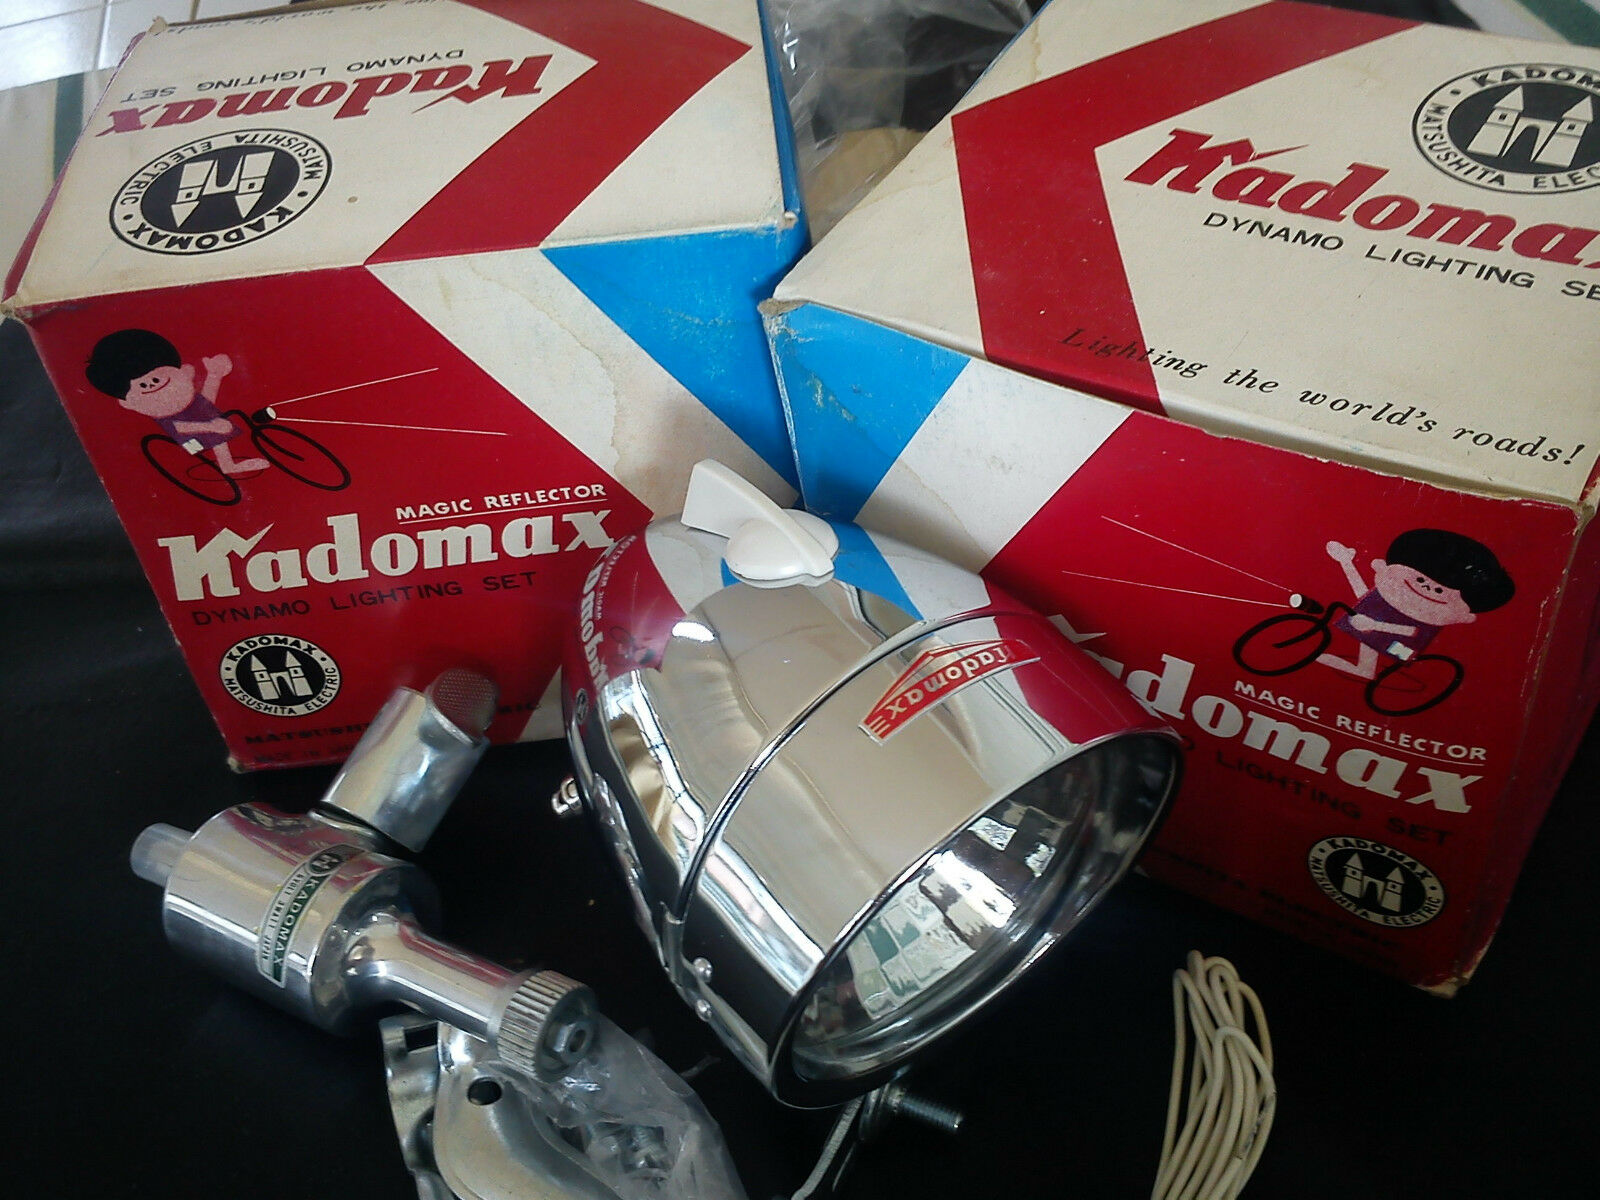 Vintage Bicycle  Light Dynamo Lighting Set -KADOMAX 6V-  Made in Japan 1960 NOS  save on clearance